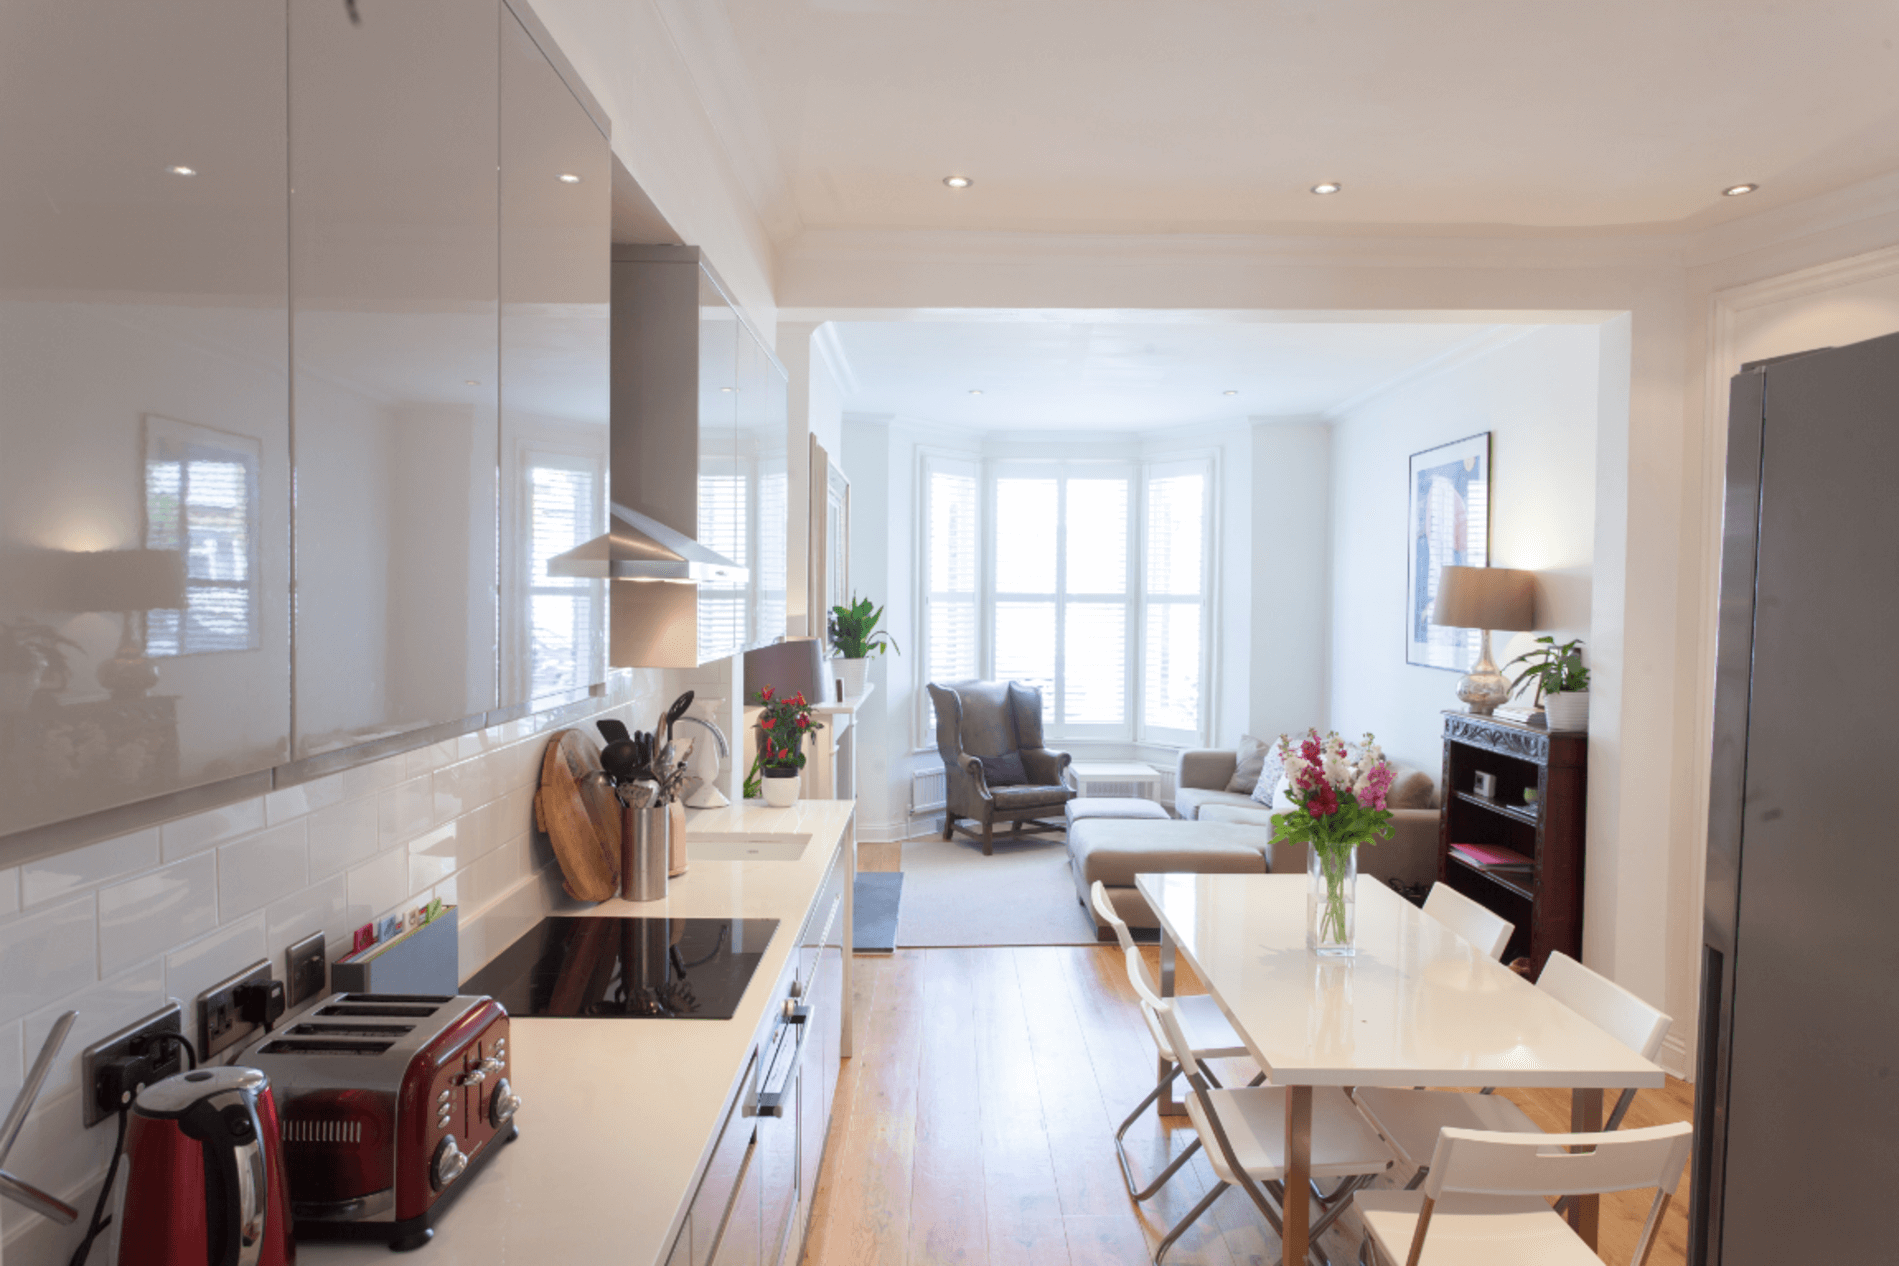 Beautifully furnished apartment with a balcony in a Victorian building in London